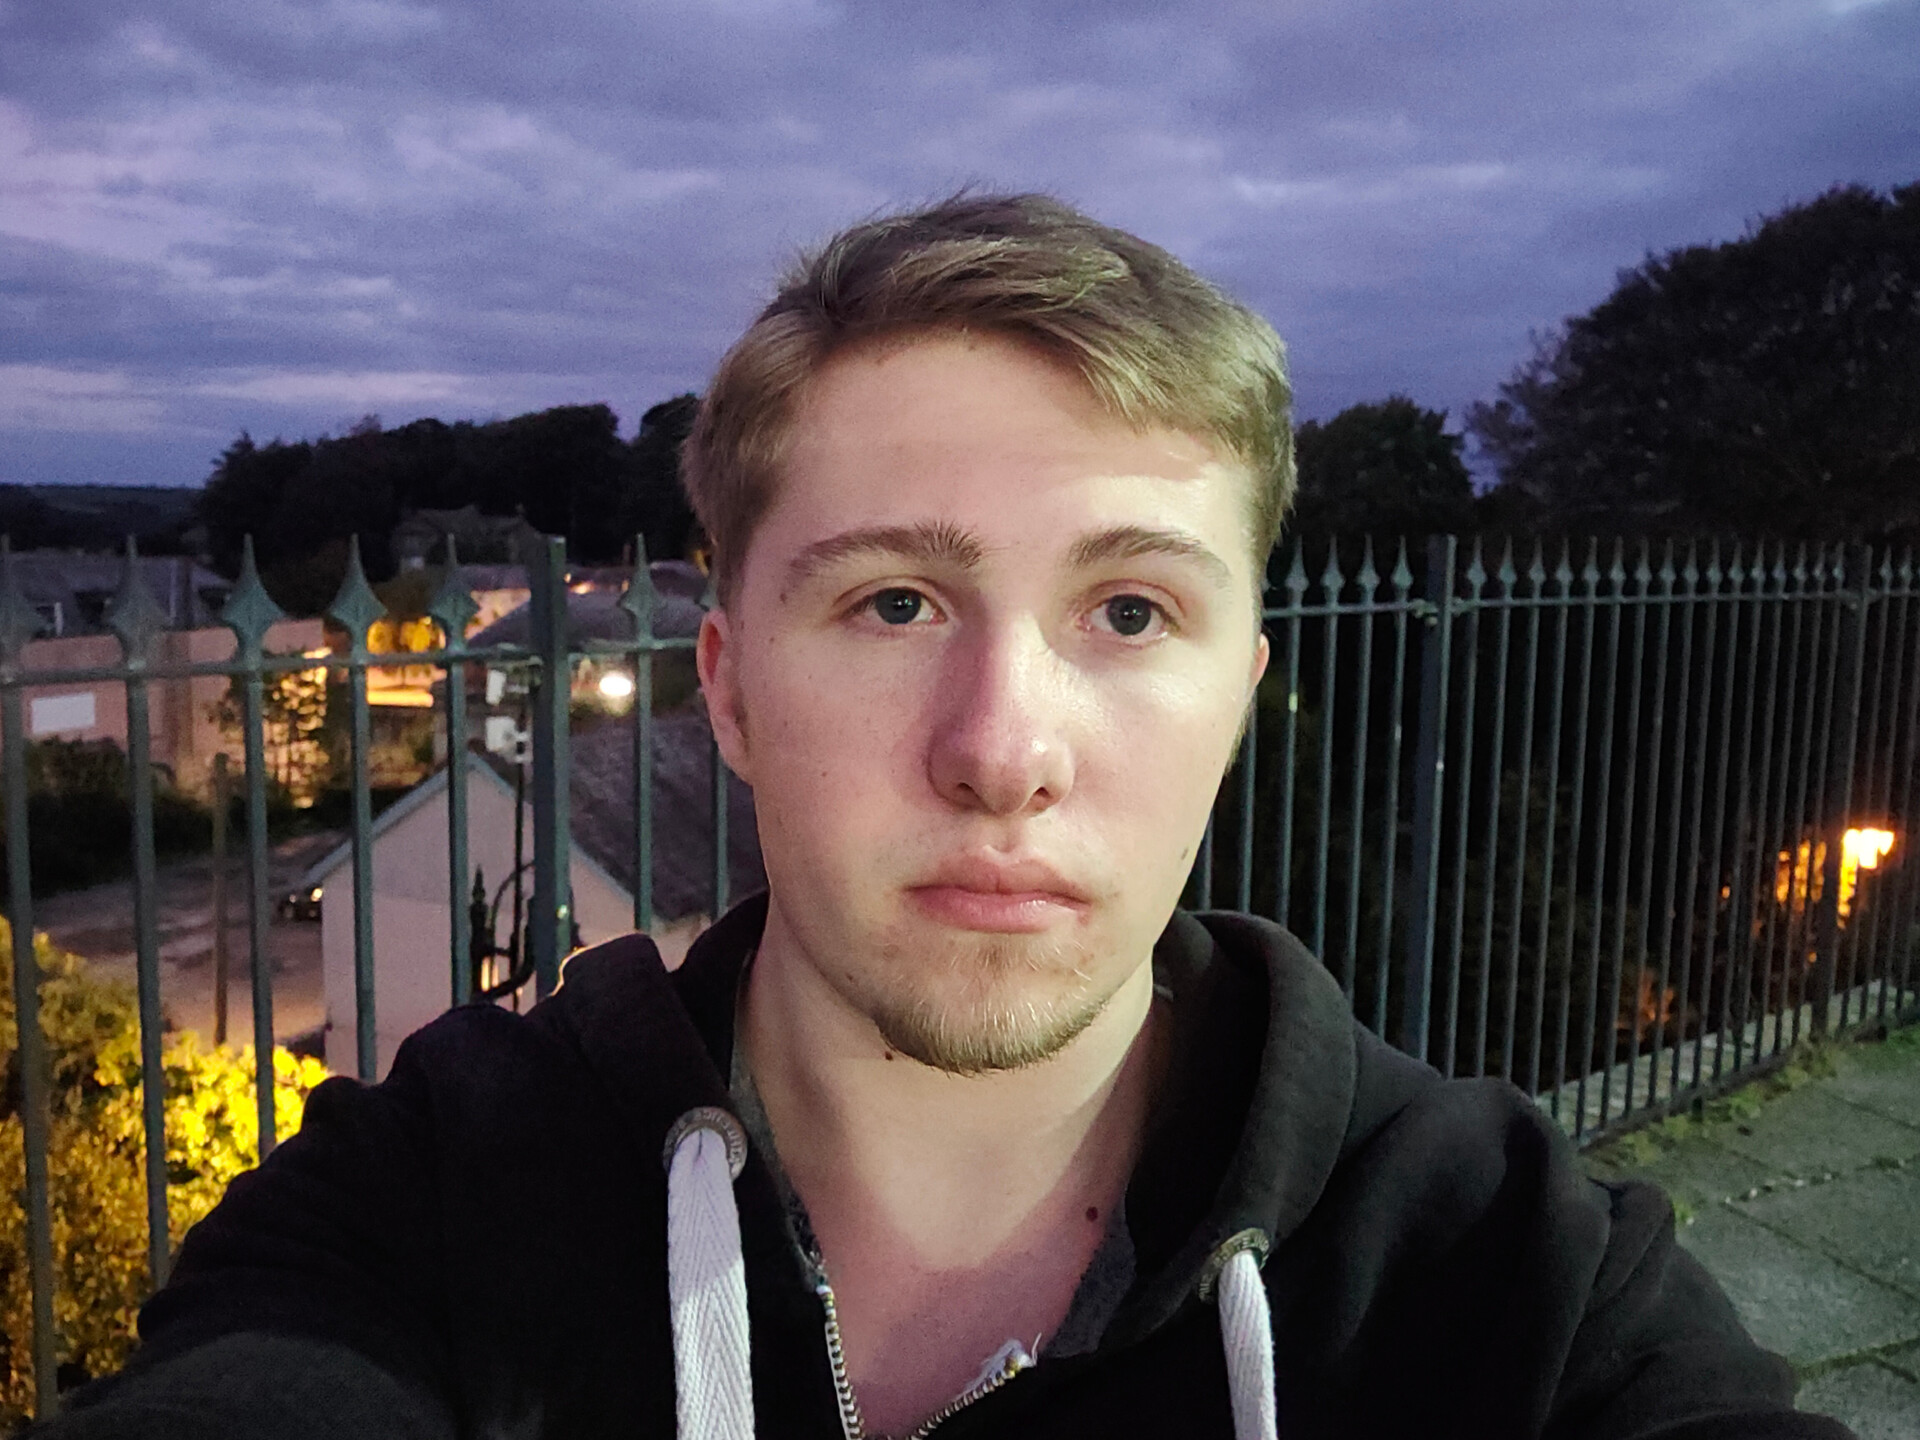 Realme 5 Pro Selfie at station overlooking town